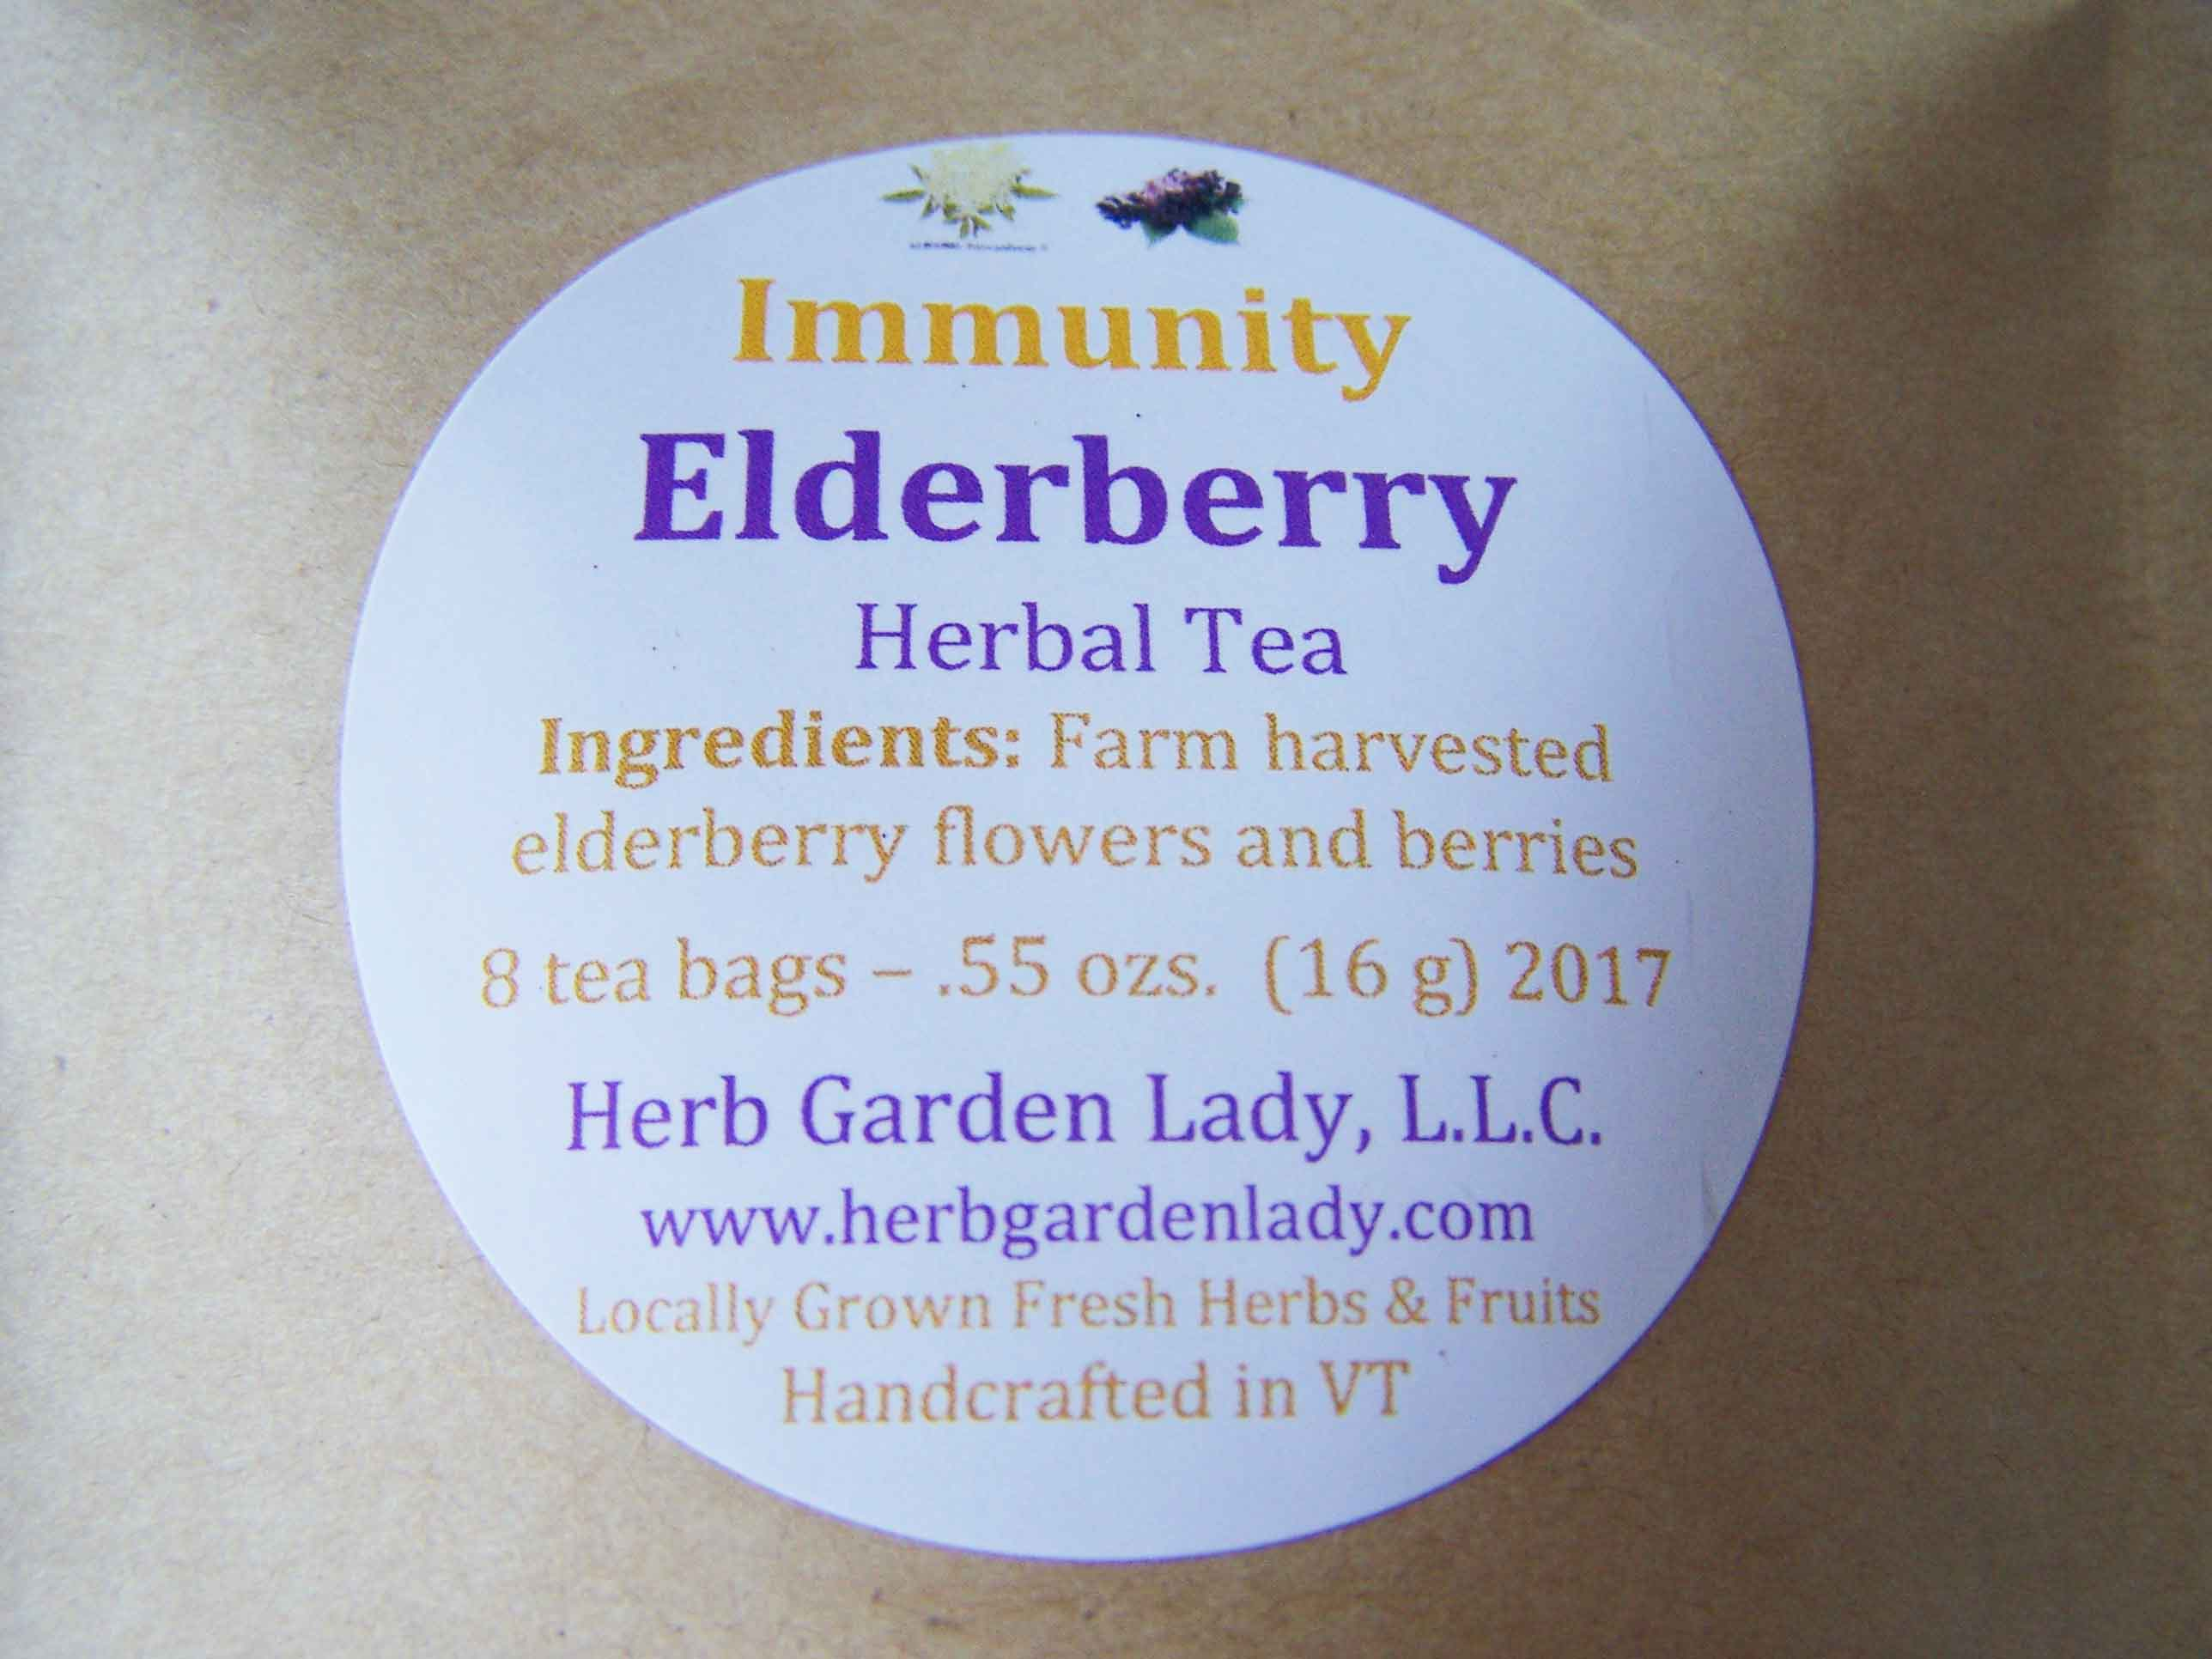 Elderberry tea immunity benefits in a herbal tea.